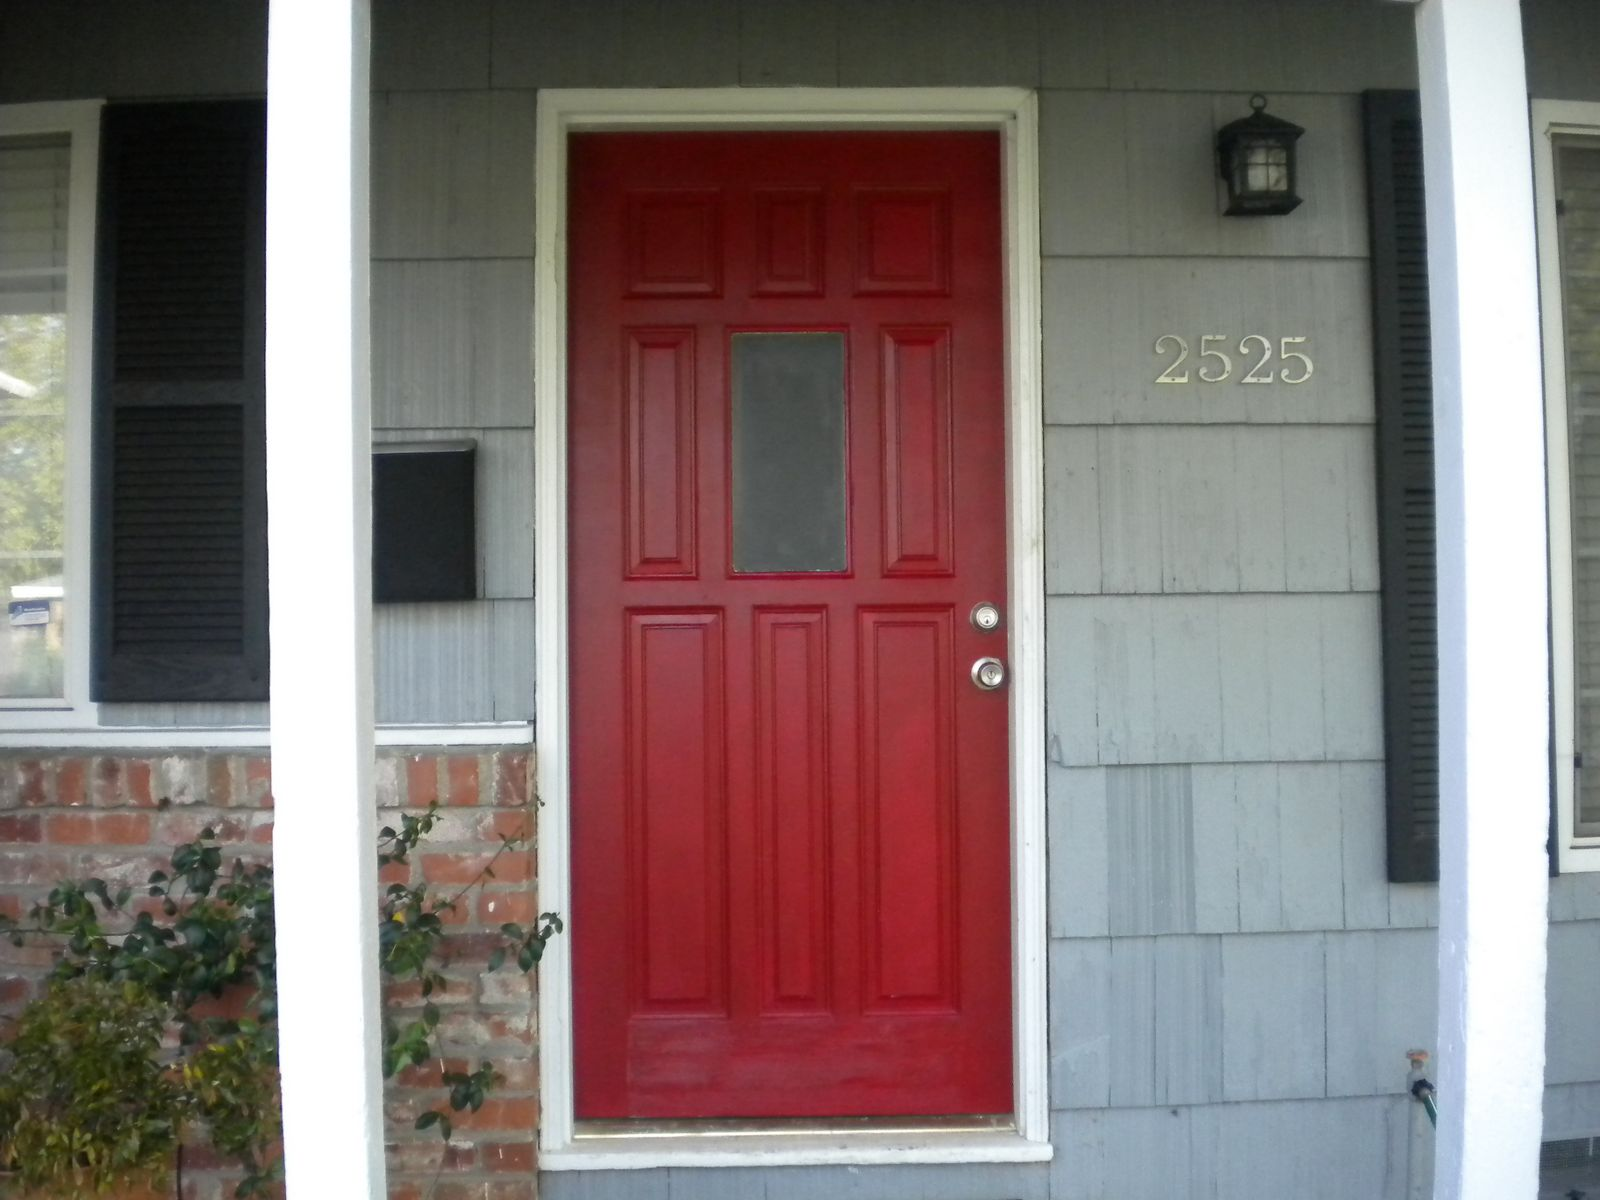 1200 #842F32 Posh Red { Our Front Door Updated } Home Depot Center pic Paint Colors For Front Doors Pictures 48211600